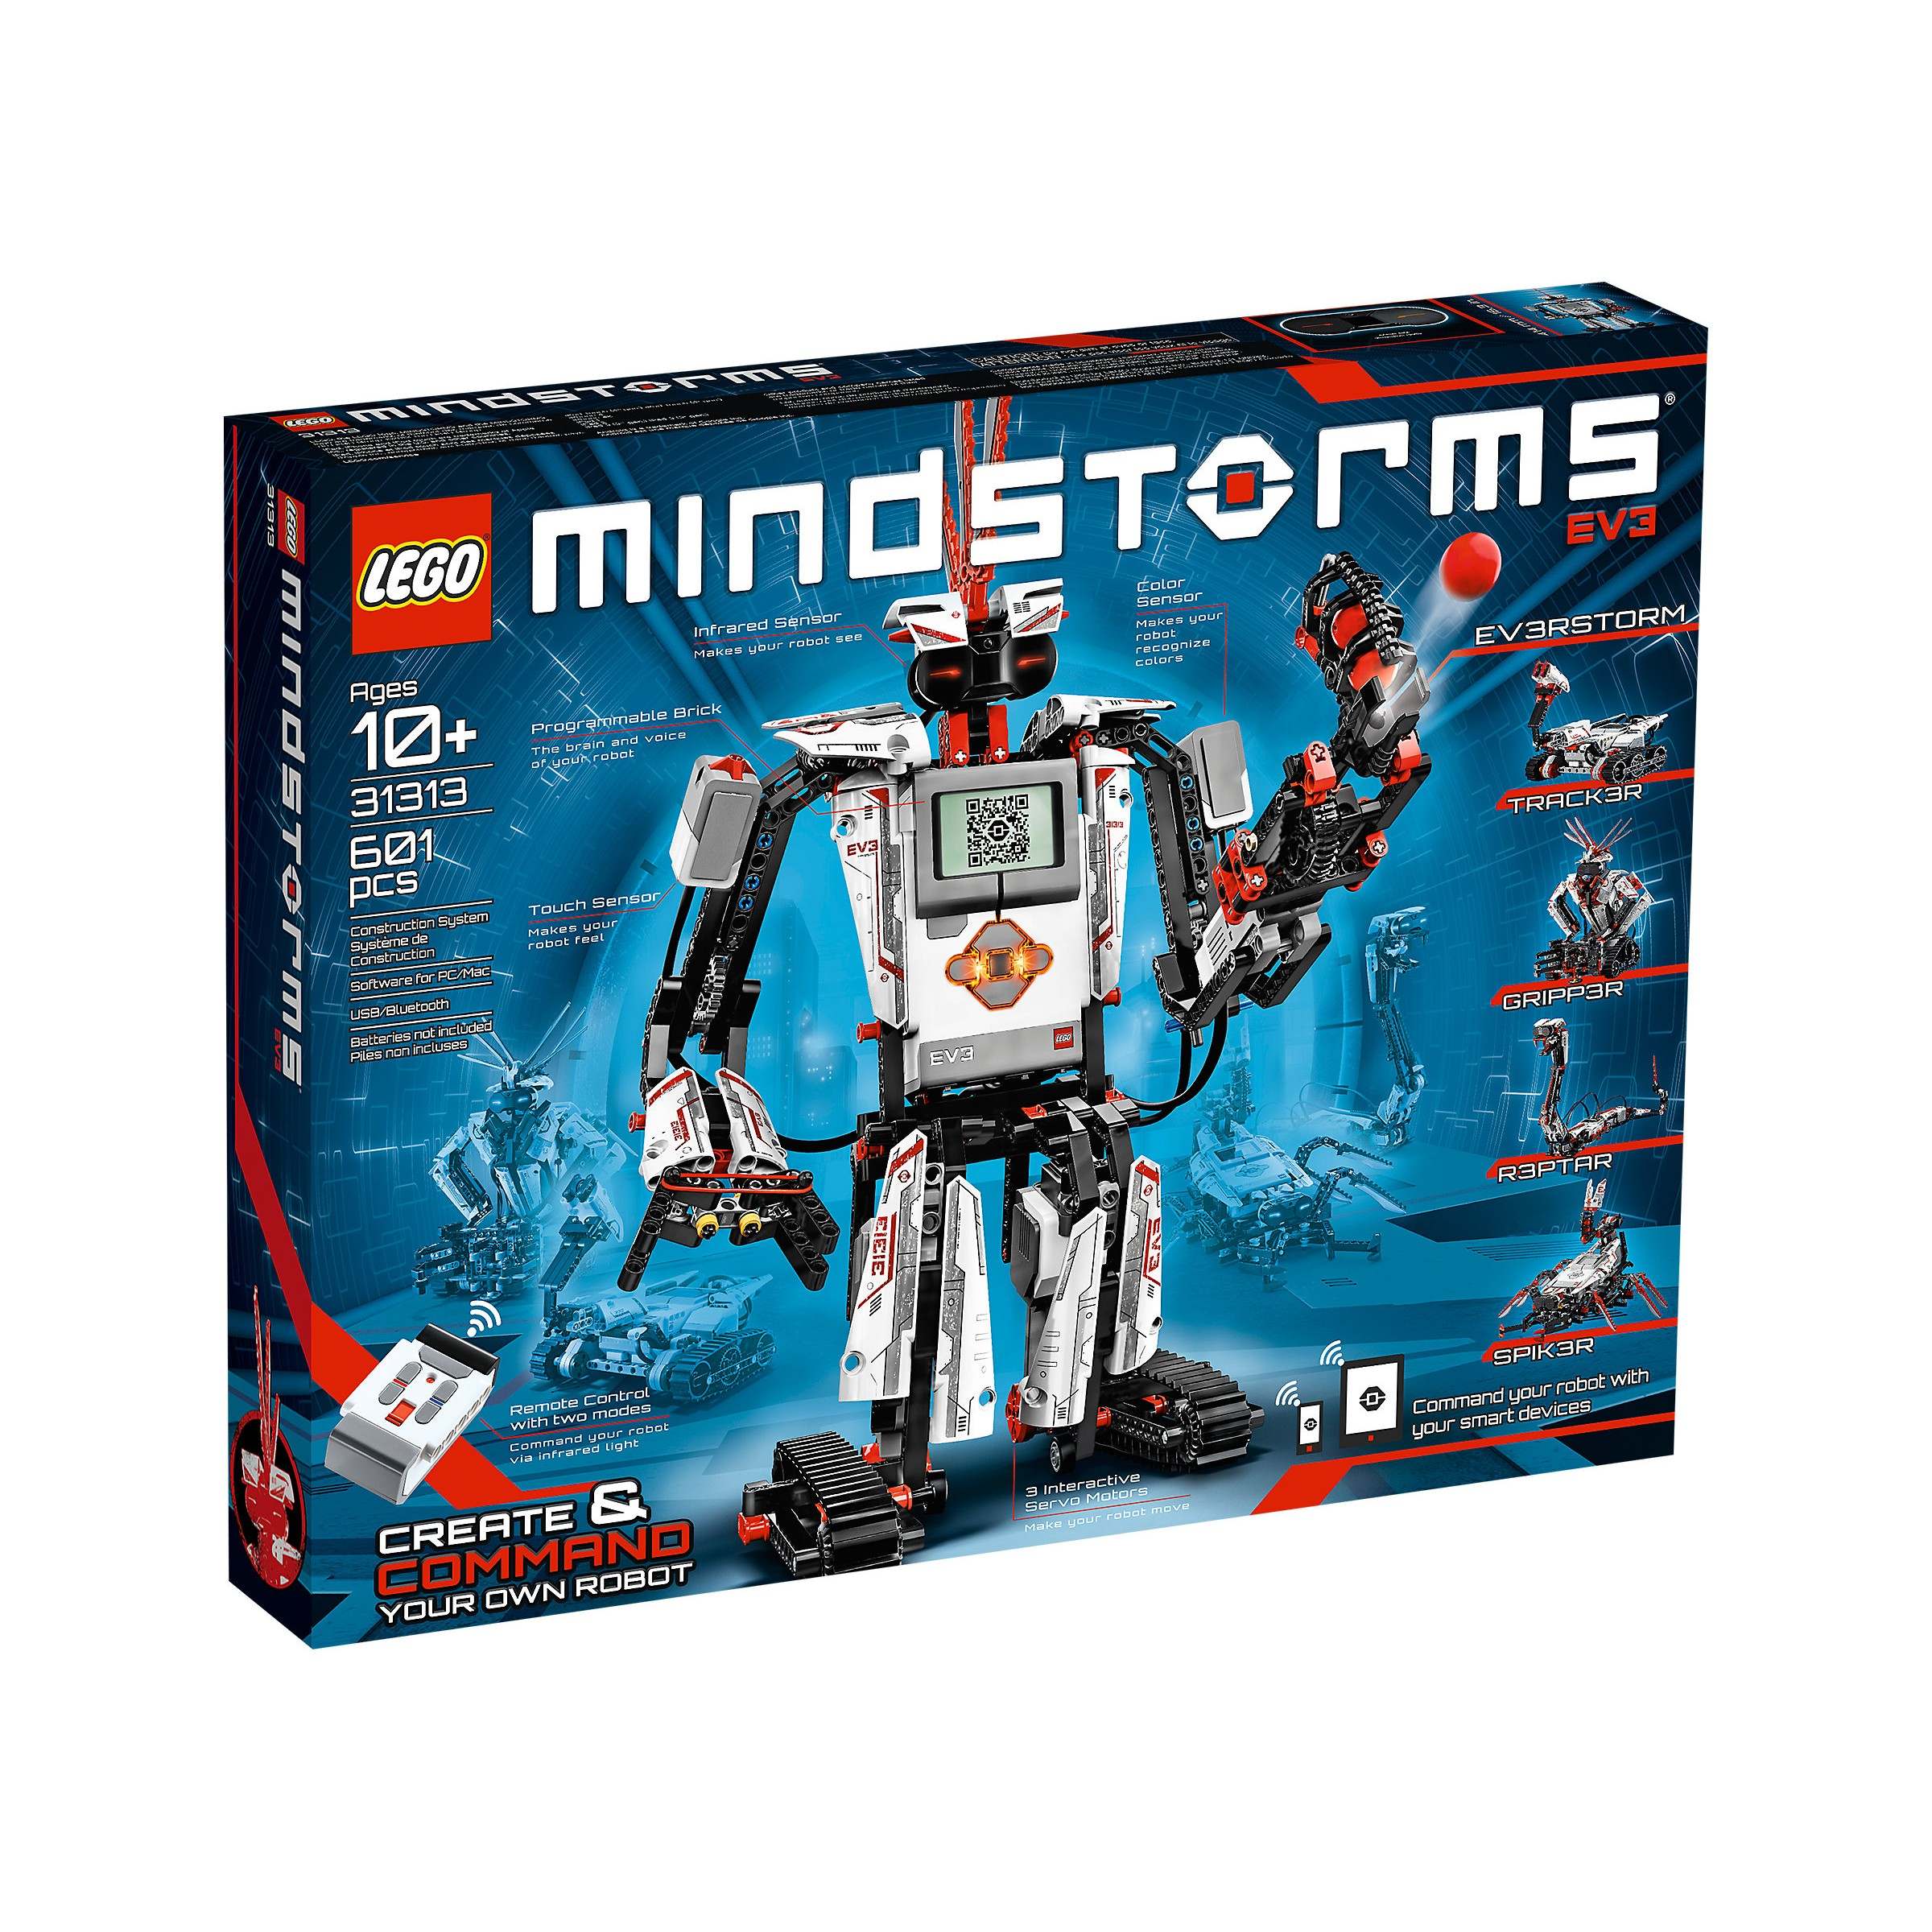 Lego 31313 Mindstorms Ev3 Robot At Hobby Warehouse